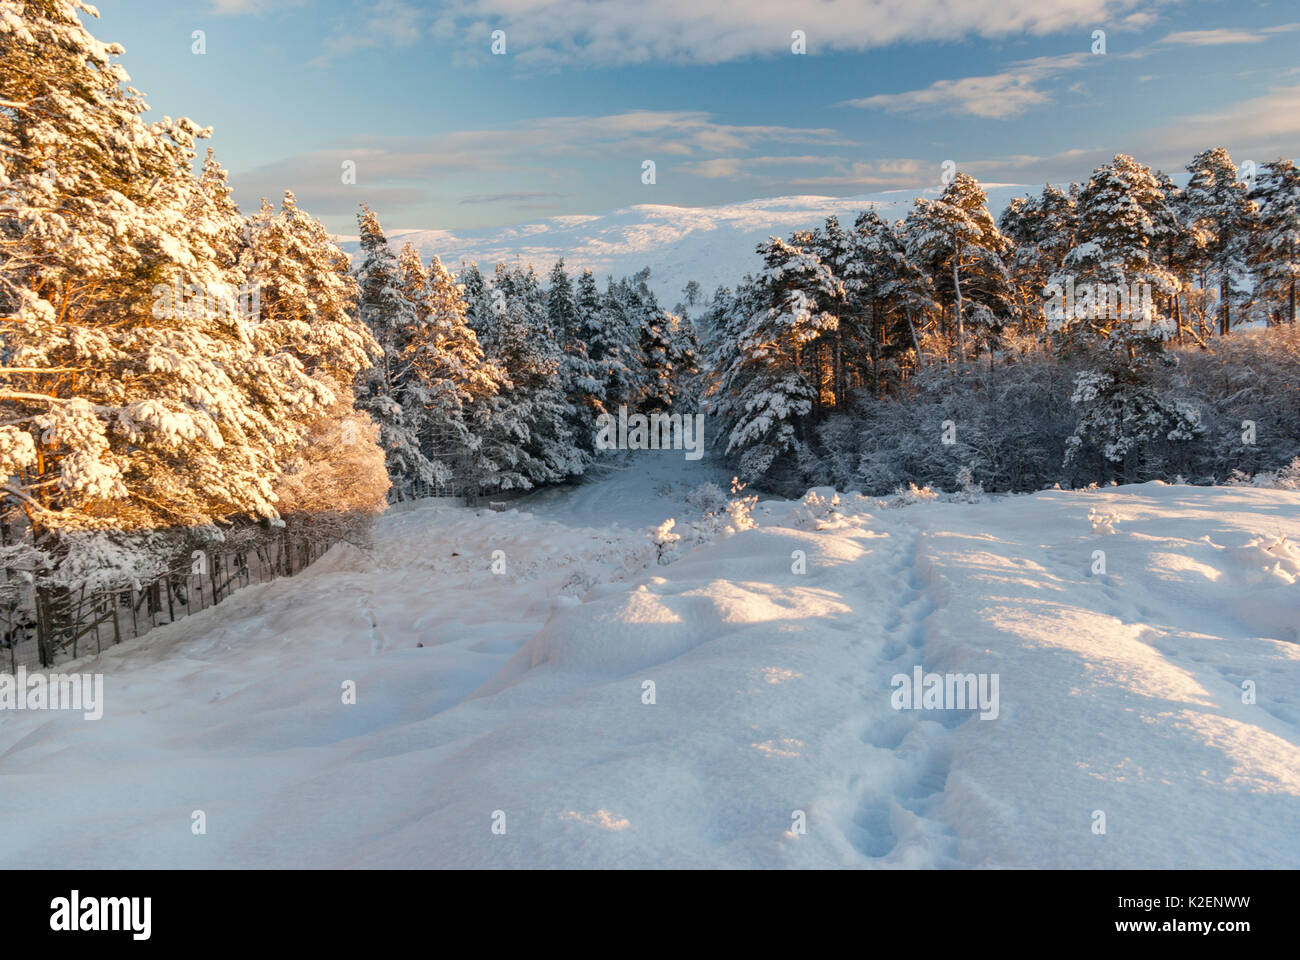 Forestry commission plantation in winter with snow, Rogart, Sutherland, Highlands, Scotland, UK - Stock Image